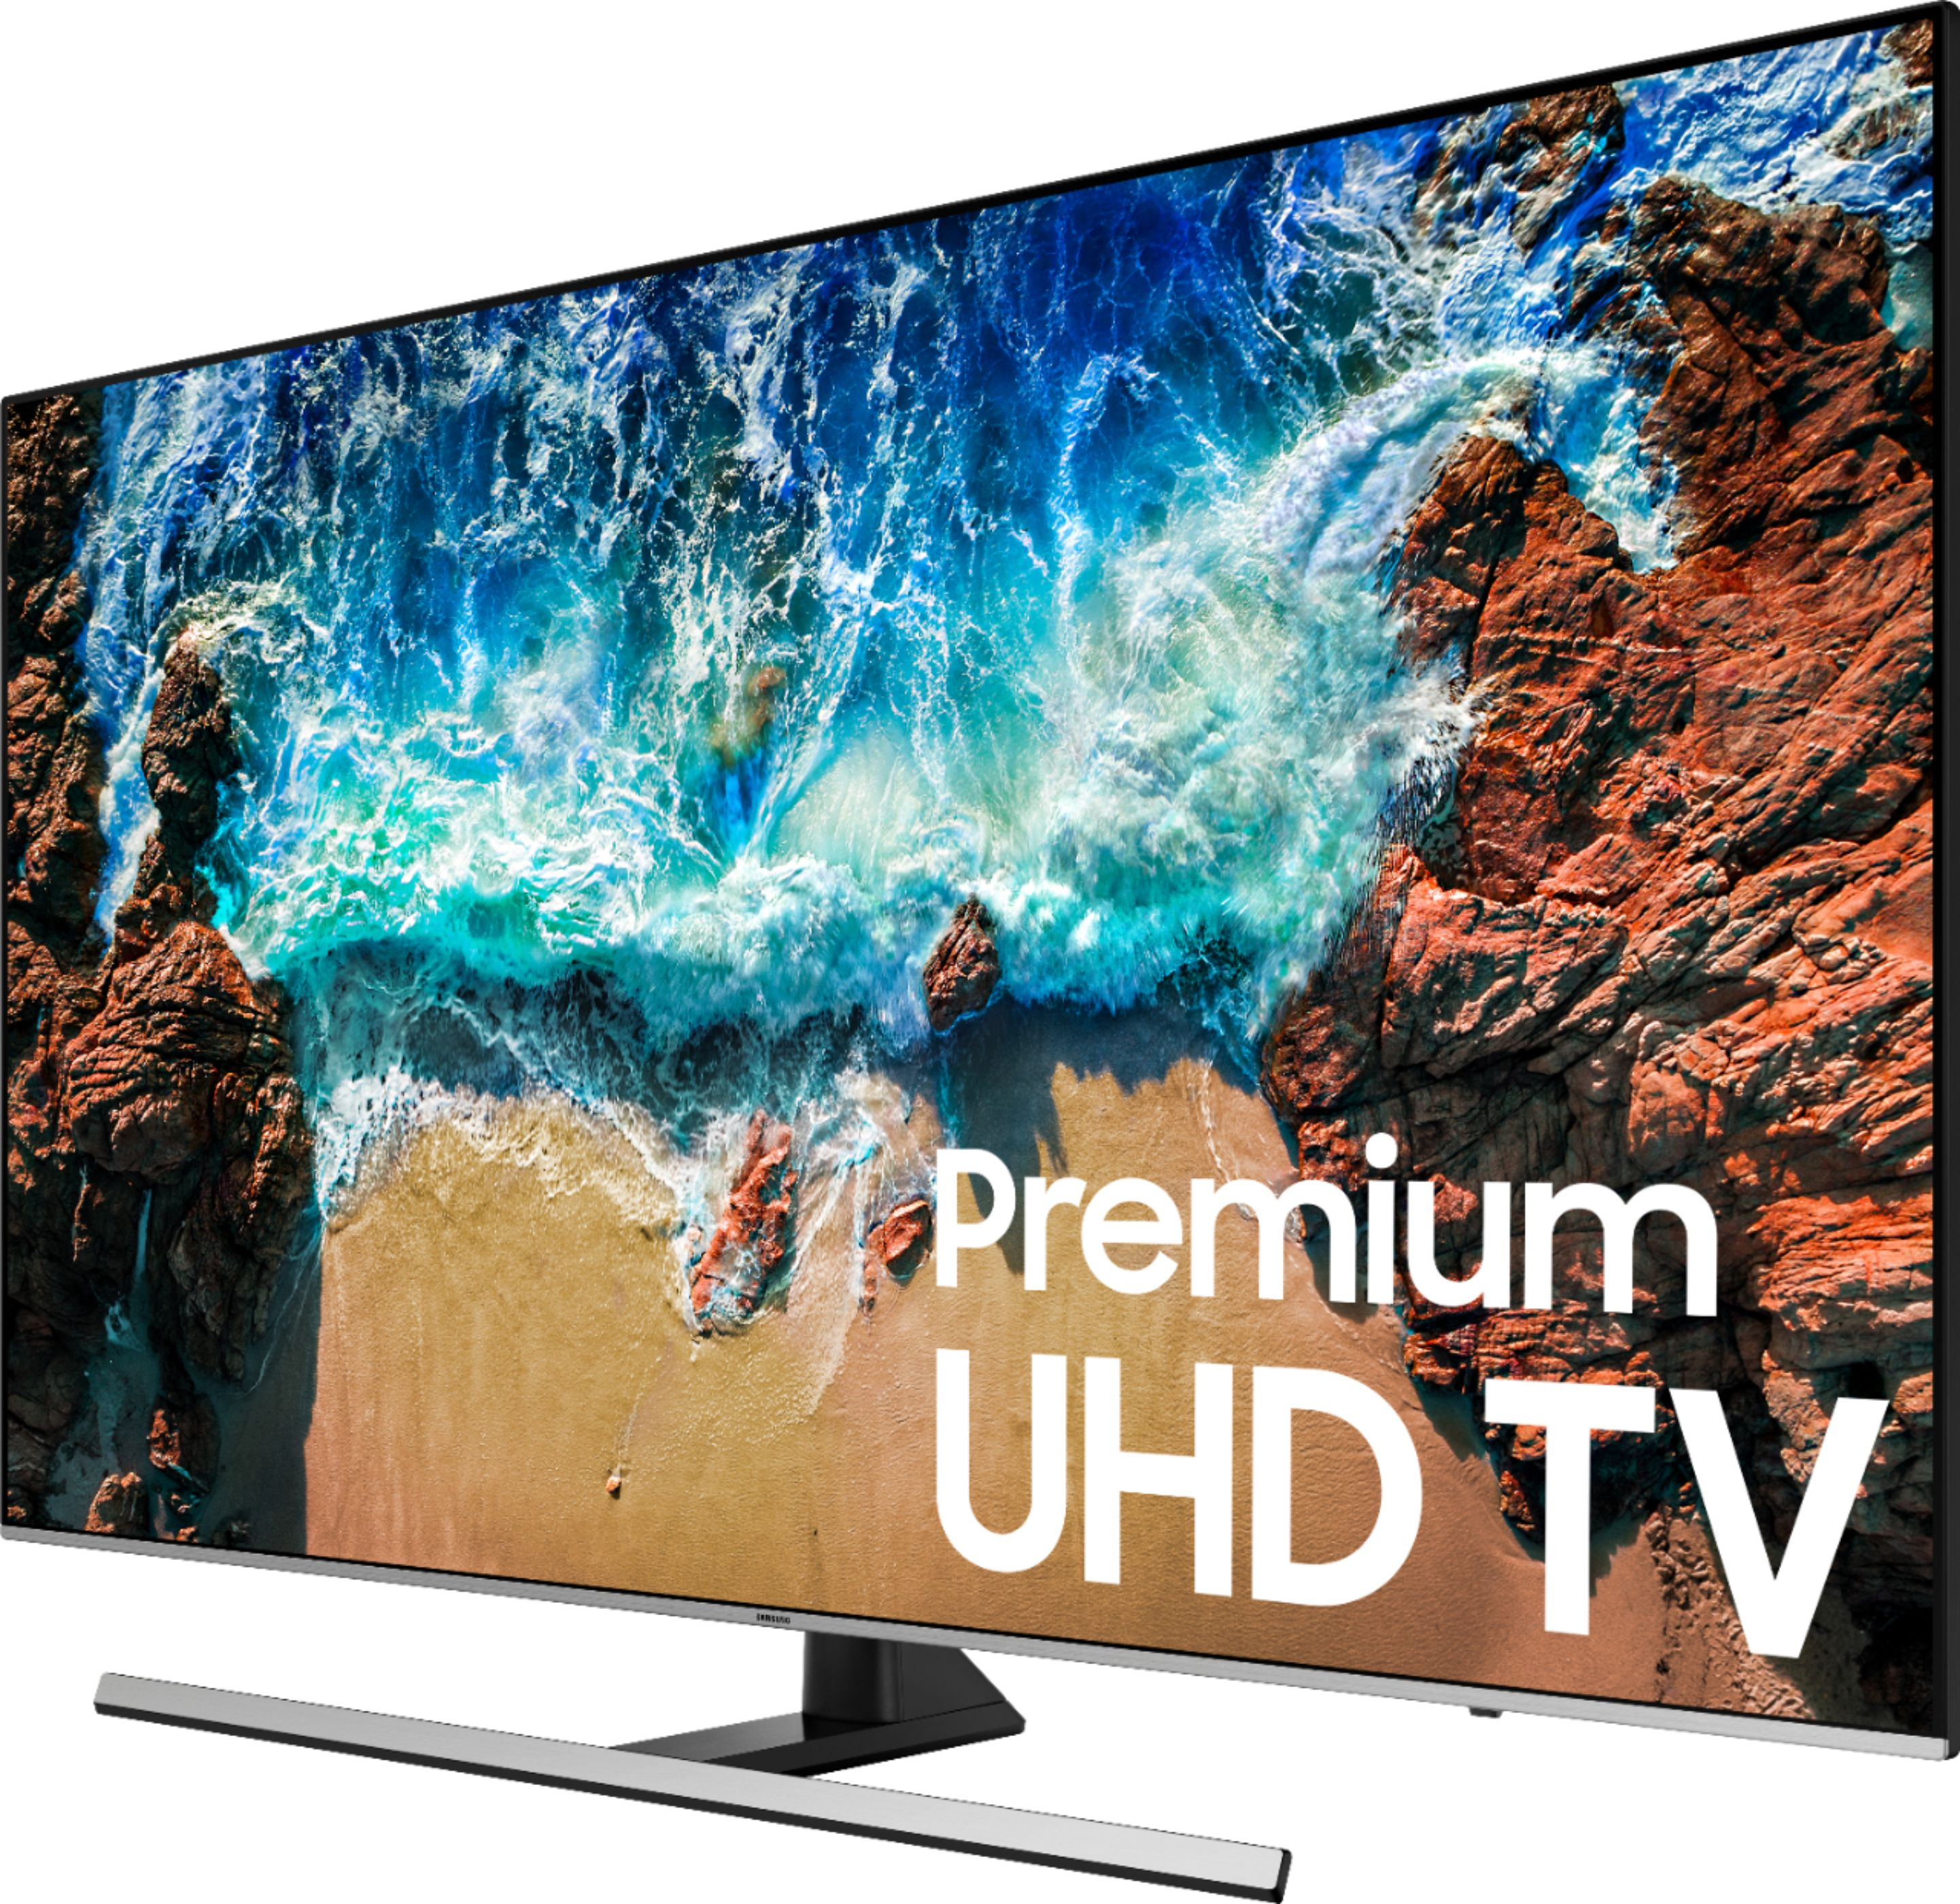 Samsung Flat Screen Tv Price Samsung 65